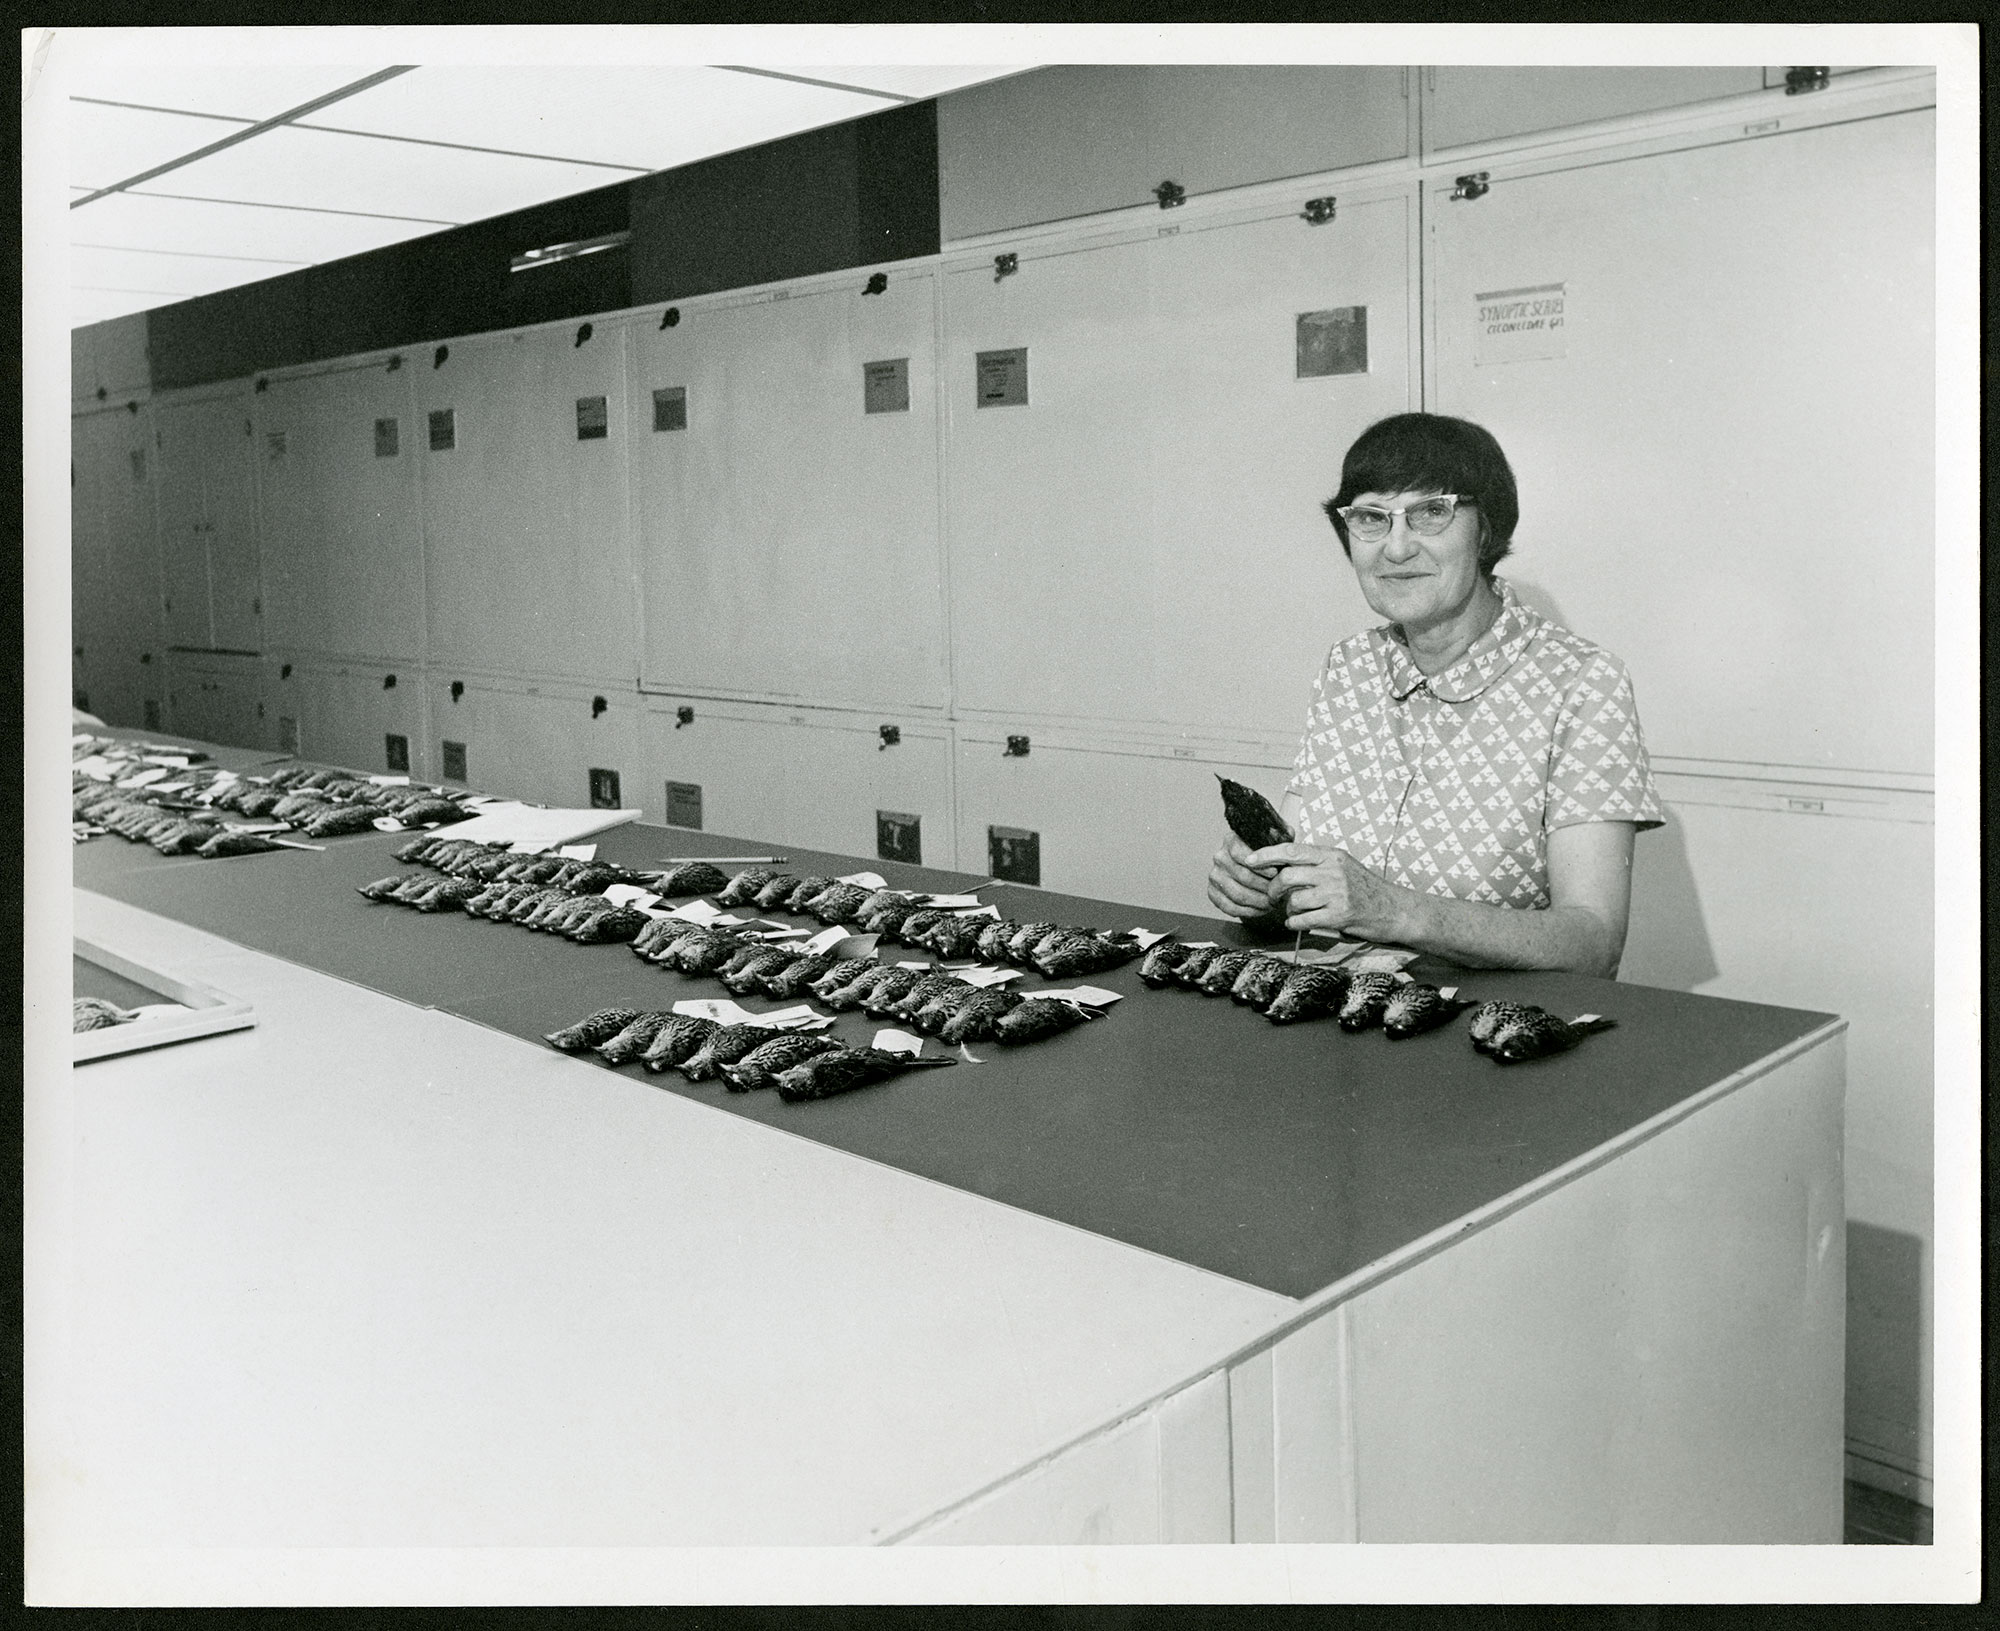 Ornithologist Roxie Laybourne in Birds Division with dozens of a single species of songbird laid out in rows, Smithsonian's National Museum of Natural History, Image ID# SIA2014-07445.